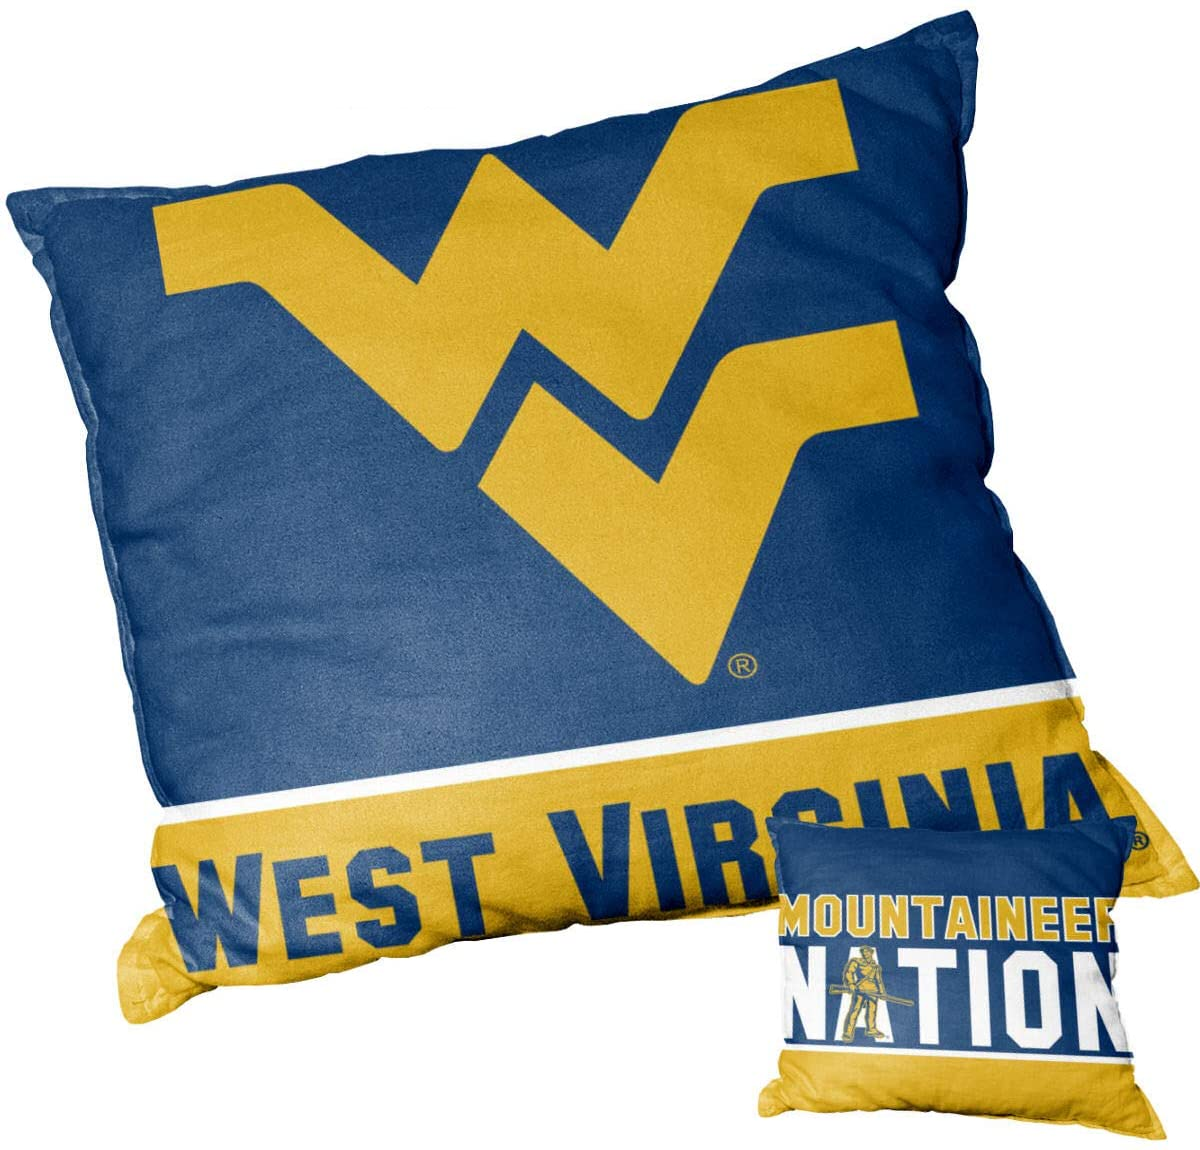 College Flags & Banners Co. West Virginia Mountaineers Mountaineer Nation Logo Pillow